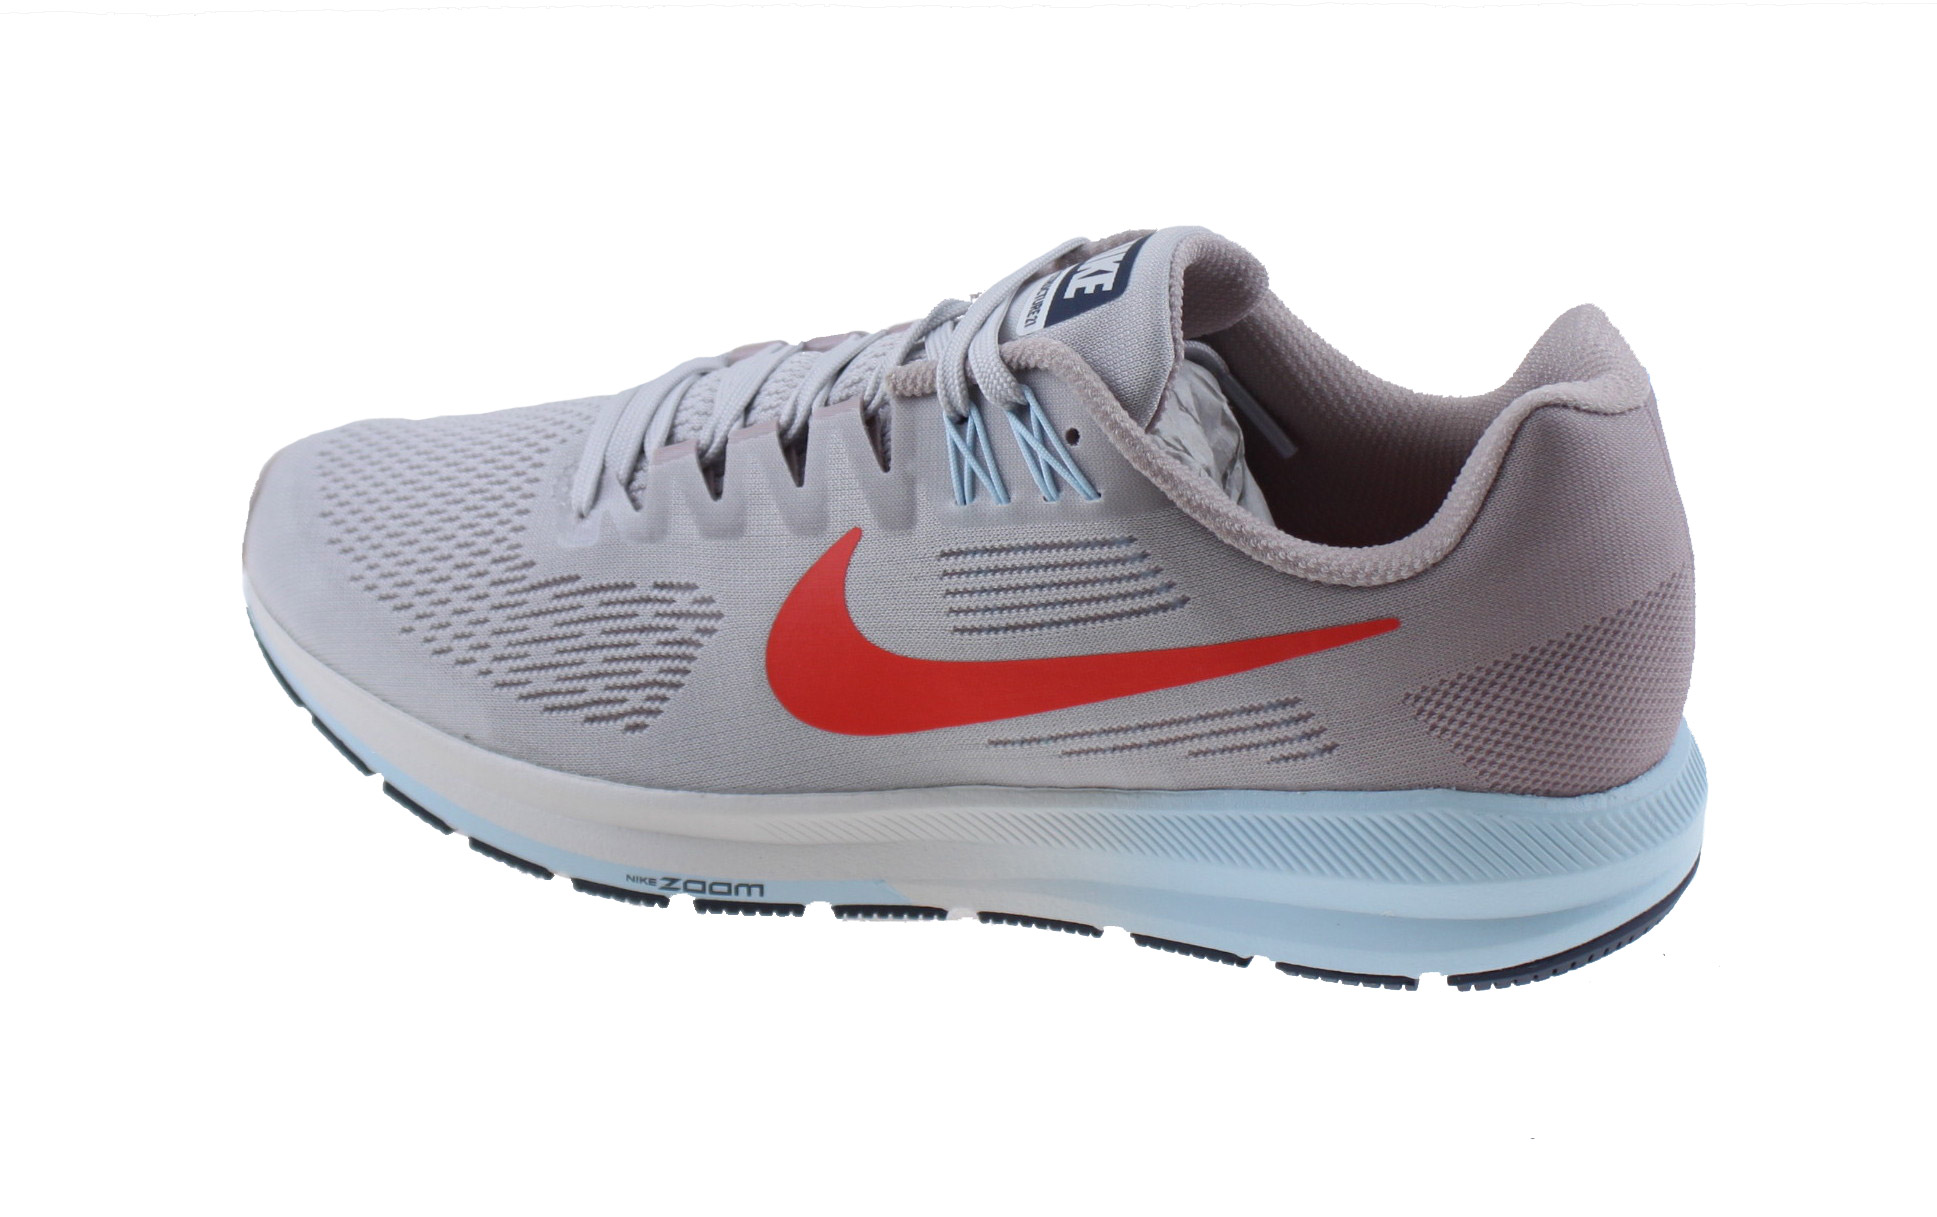 9d8f25fcc0a Nike Air Zoom Structure 21 Dames Hardloopschoen. 904701 006 Vast Grey/Elemental  Rose Cobalt Tint Habanero Red. Product afbeelding Product afbeelding  Product ...